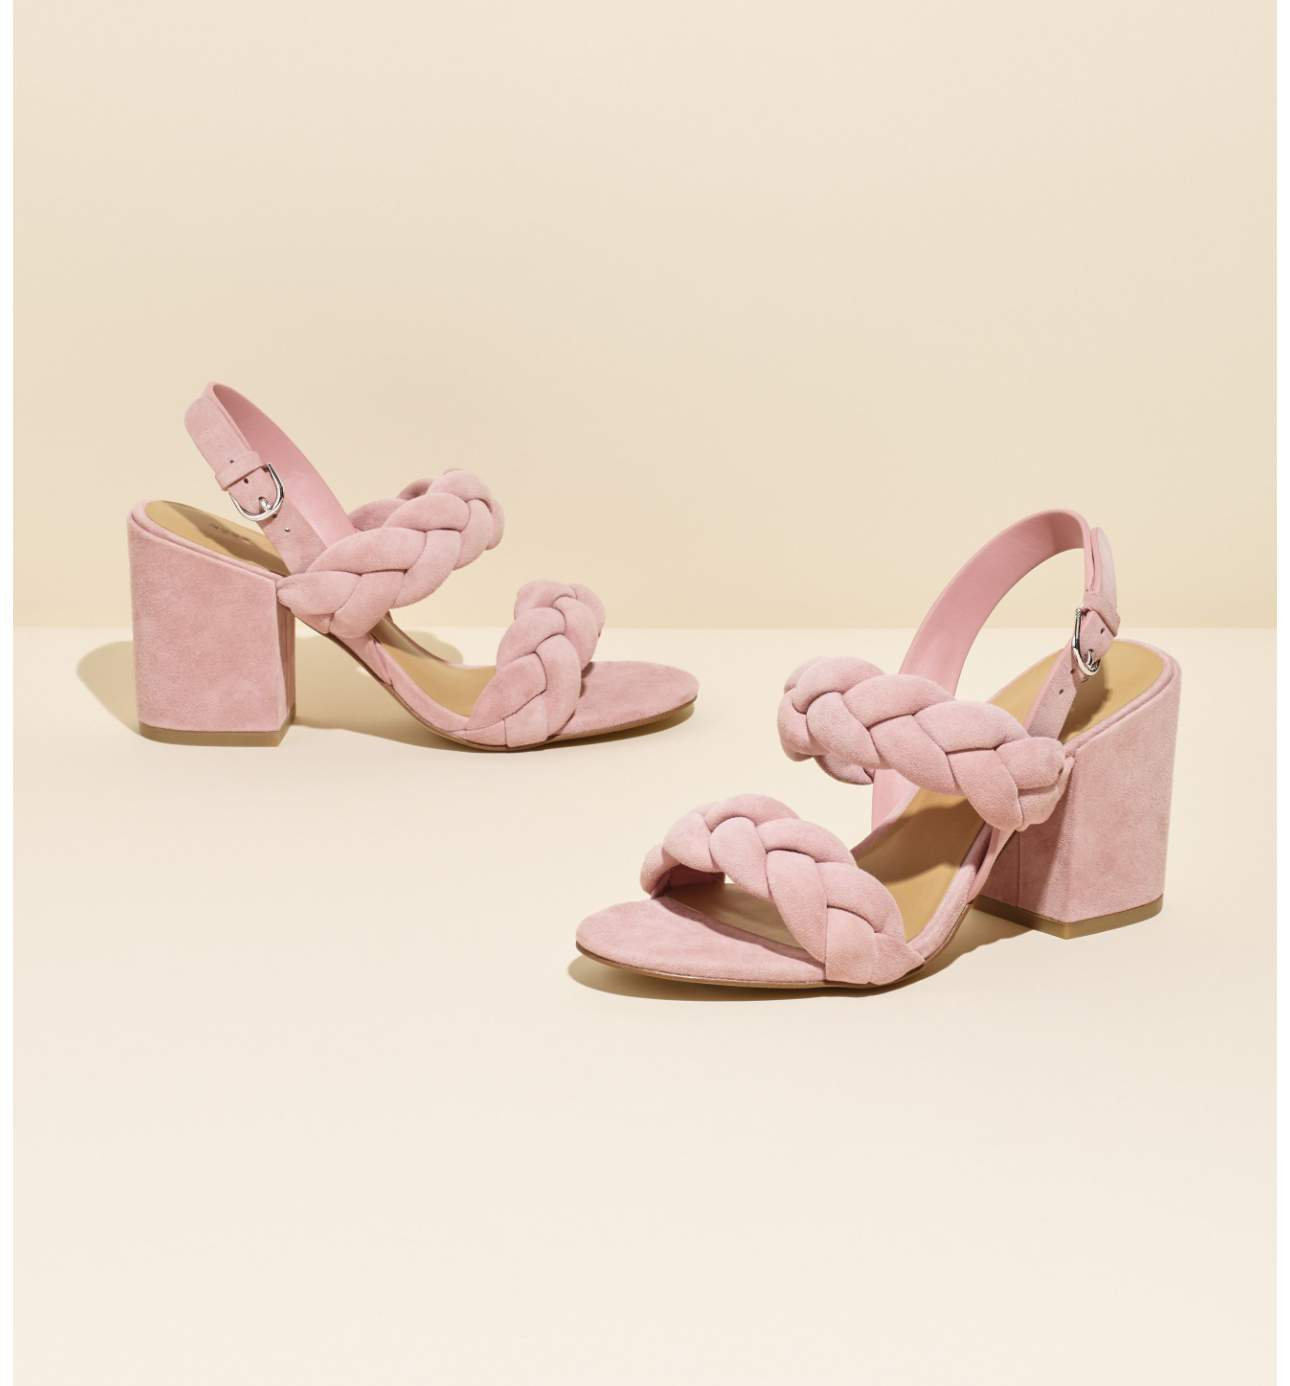 <p>The best way to walk into a new season is with a great pair of shoes.  We've rounded up 6 shoes every Seattle gal NEEDS this Spring, starting with this darling 'dusty rose' block heel sandal.  The braided straps and a bold block heel make this sandal a modern must-have. Candace Block Heel Sandal - $164.95. (Image: Nordstrom) </p><p></p>